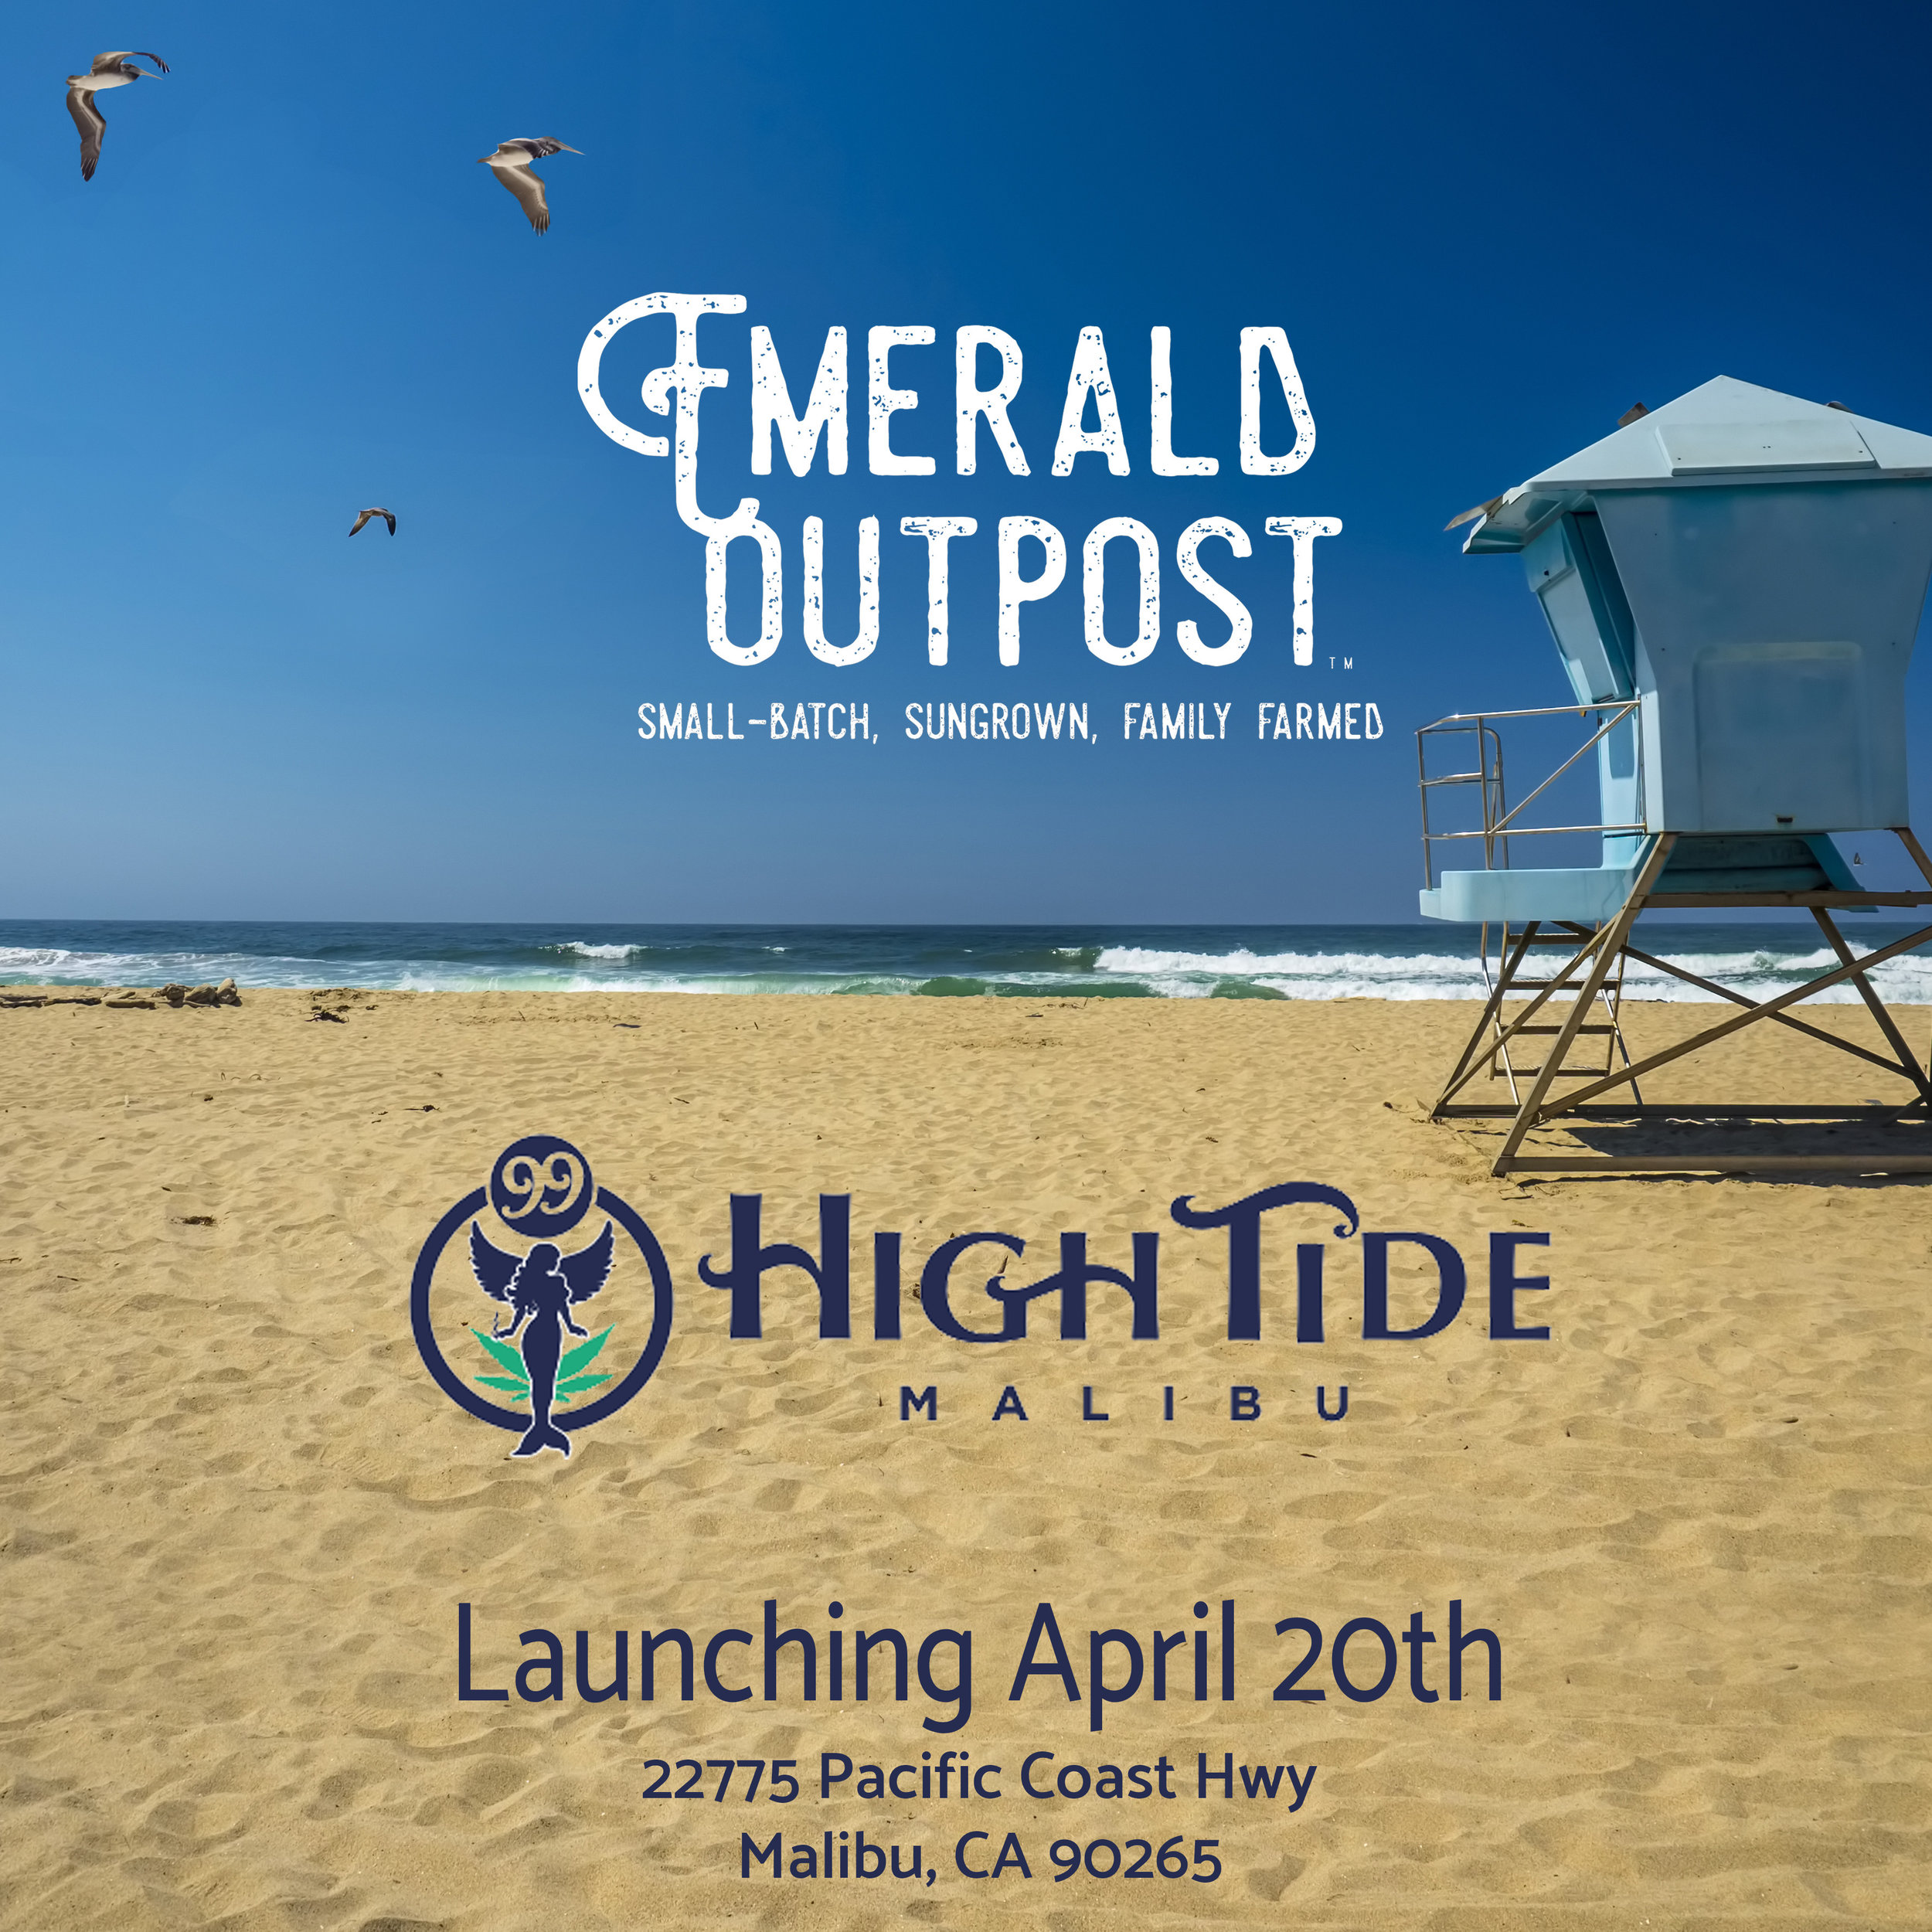 Emerald Outpost at 99 High Tide.JPG